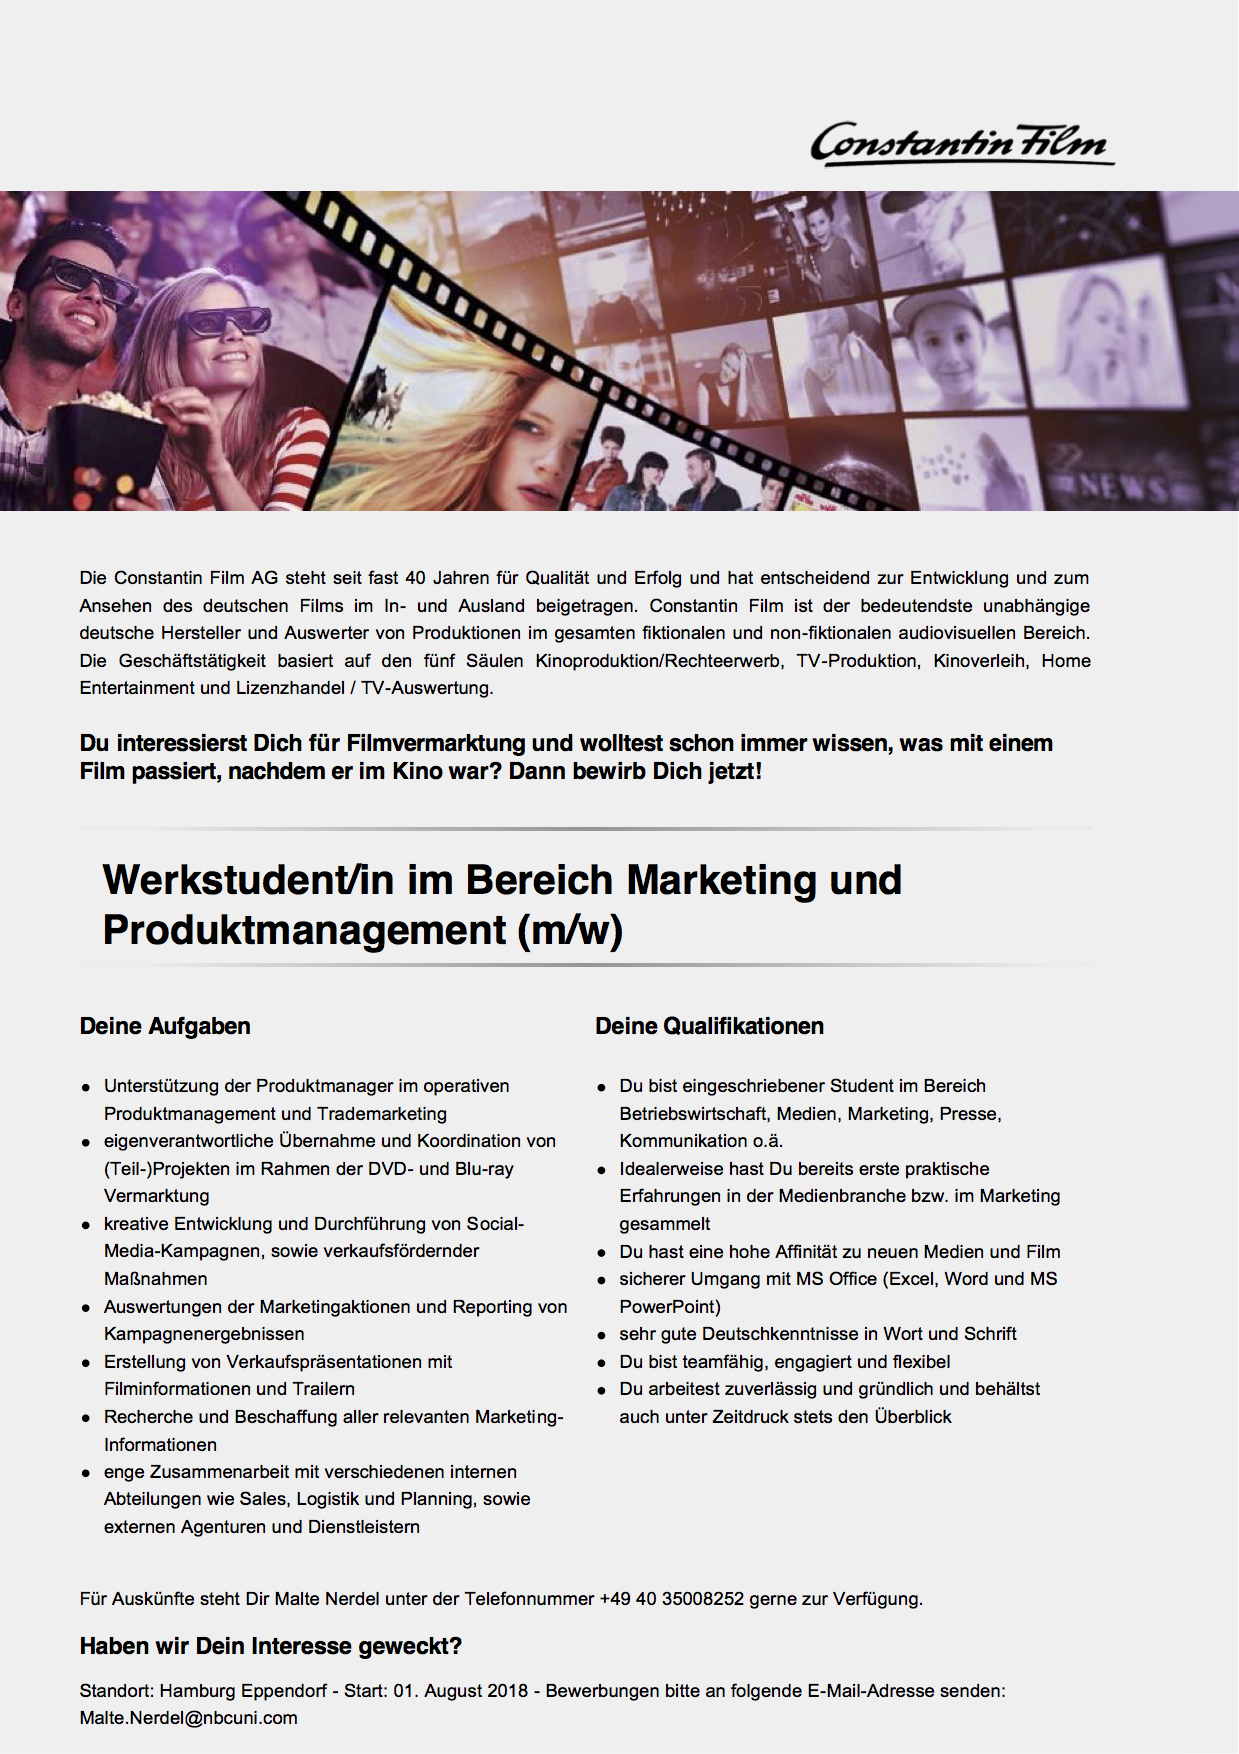 Werkstudent/in im Bereich Marketing und Produktmanagement (m/w)